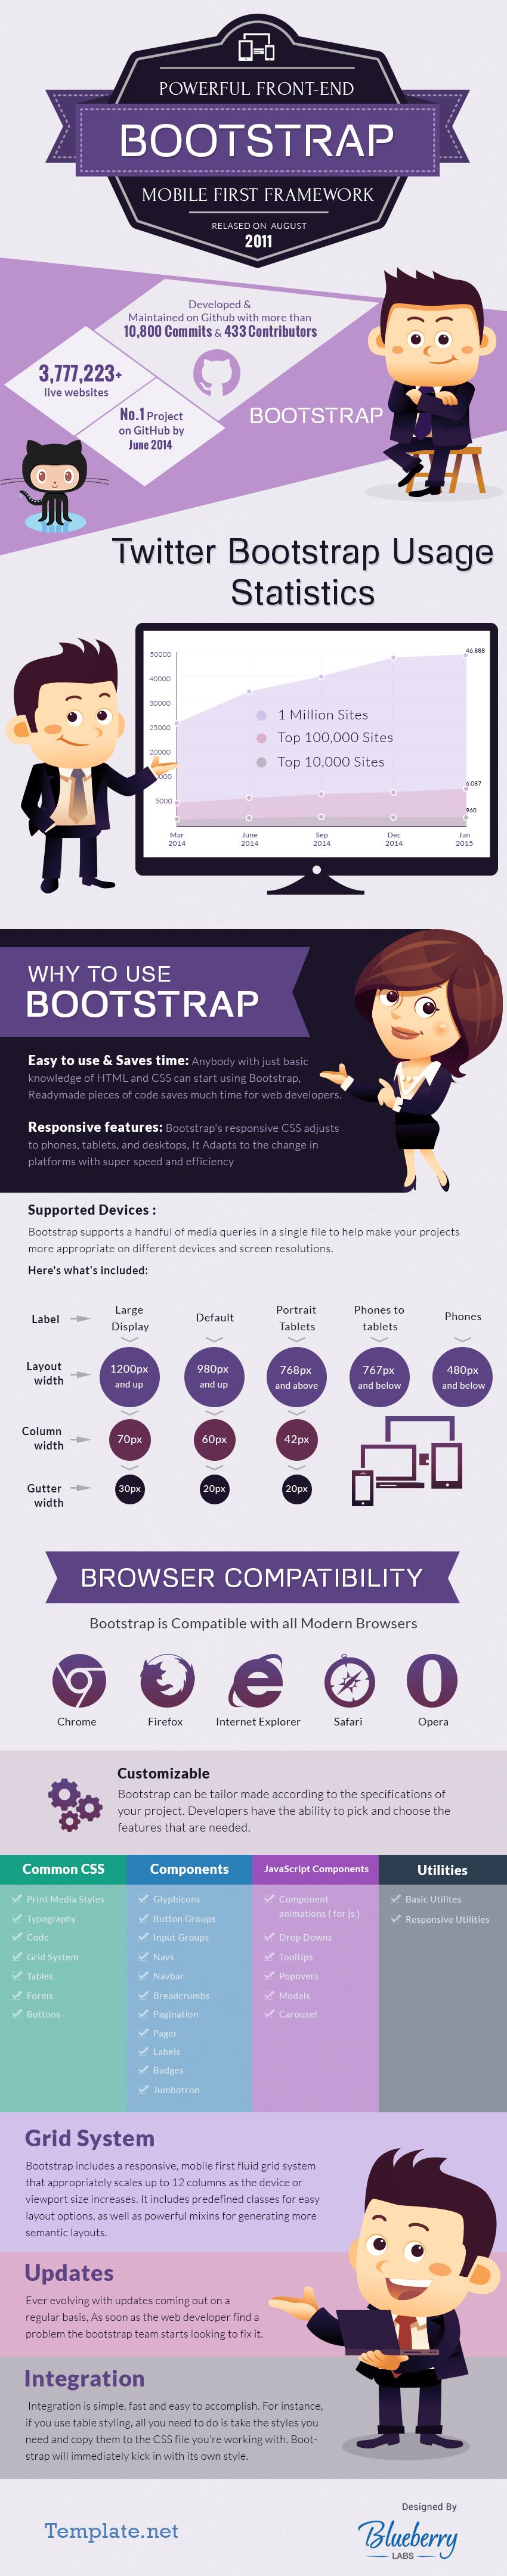 Bootstrap-Powerful-Front-end-Mobile-First-Framework